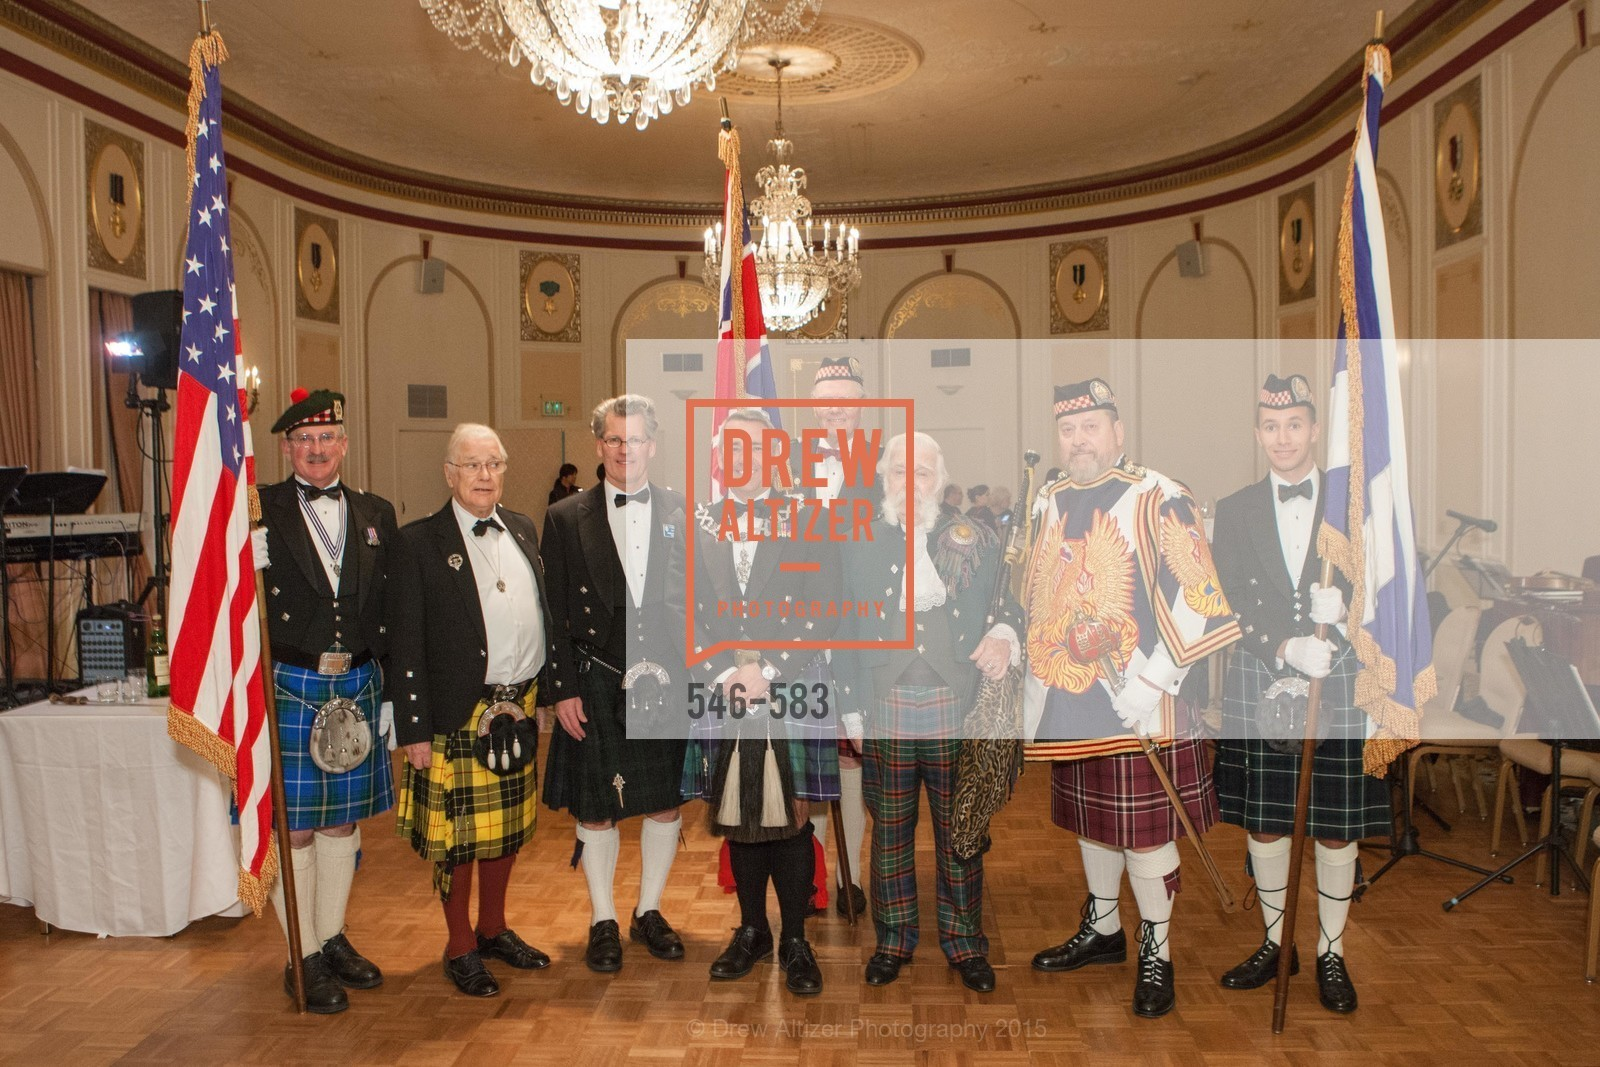 Fred Rutledge, David Campbell, Jamie Koyil, Allen Cary, Jek Cunningham, Bill Jaggers, Sola Peterson-Marke, St. Andrew's Society of San Francisco Annual Banquet and Ball 2015, Marines' Memorial Club & Hotel. 609 Sutter St, November 28th, 2015,Drew Altizer, Drew Altizer Photography, full-service agency, private events, San Francisco photographer, photographer california